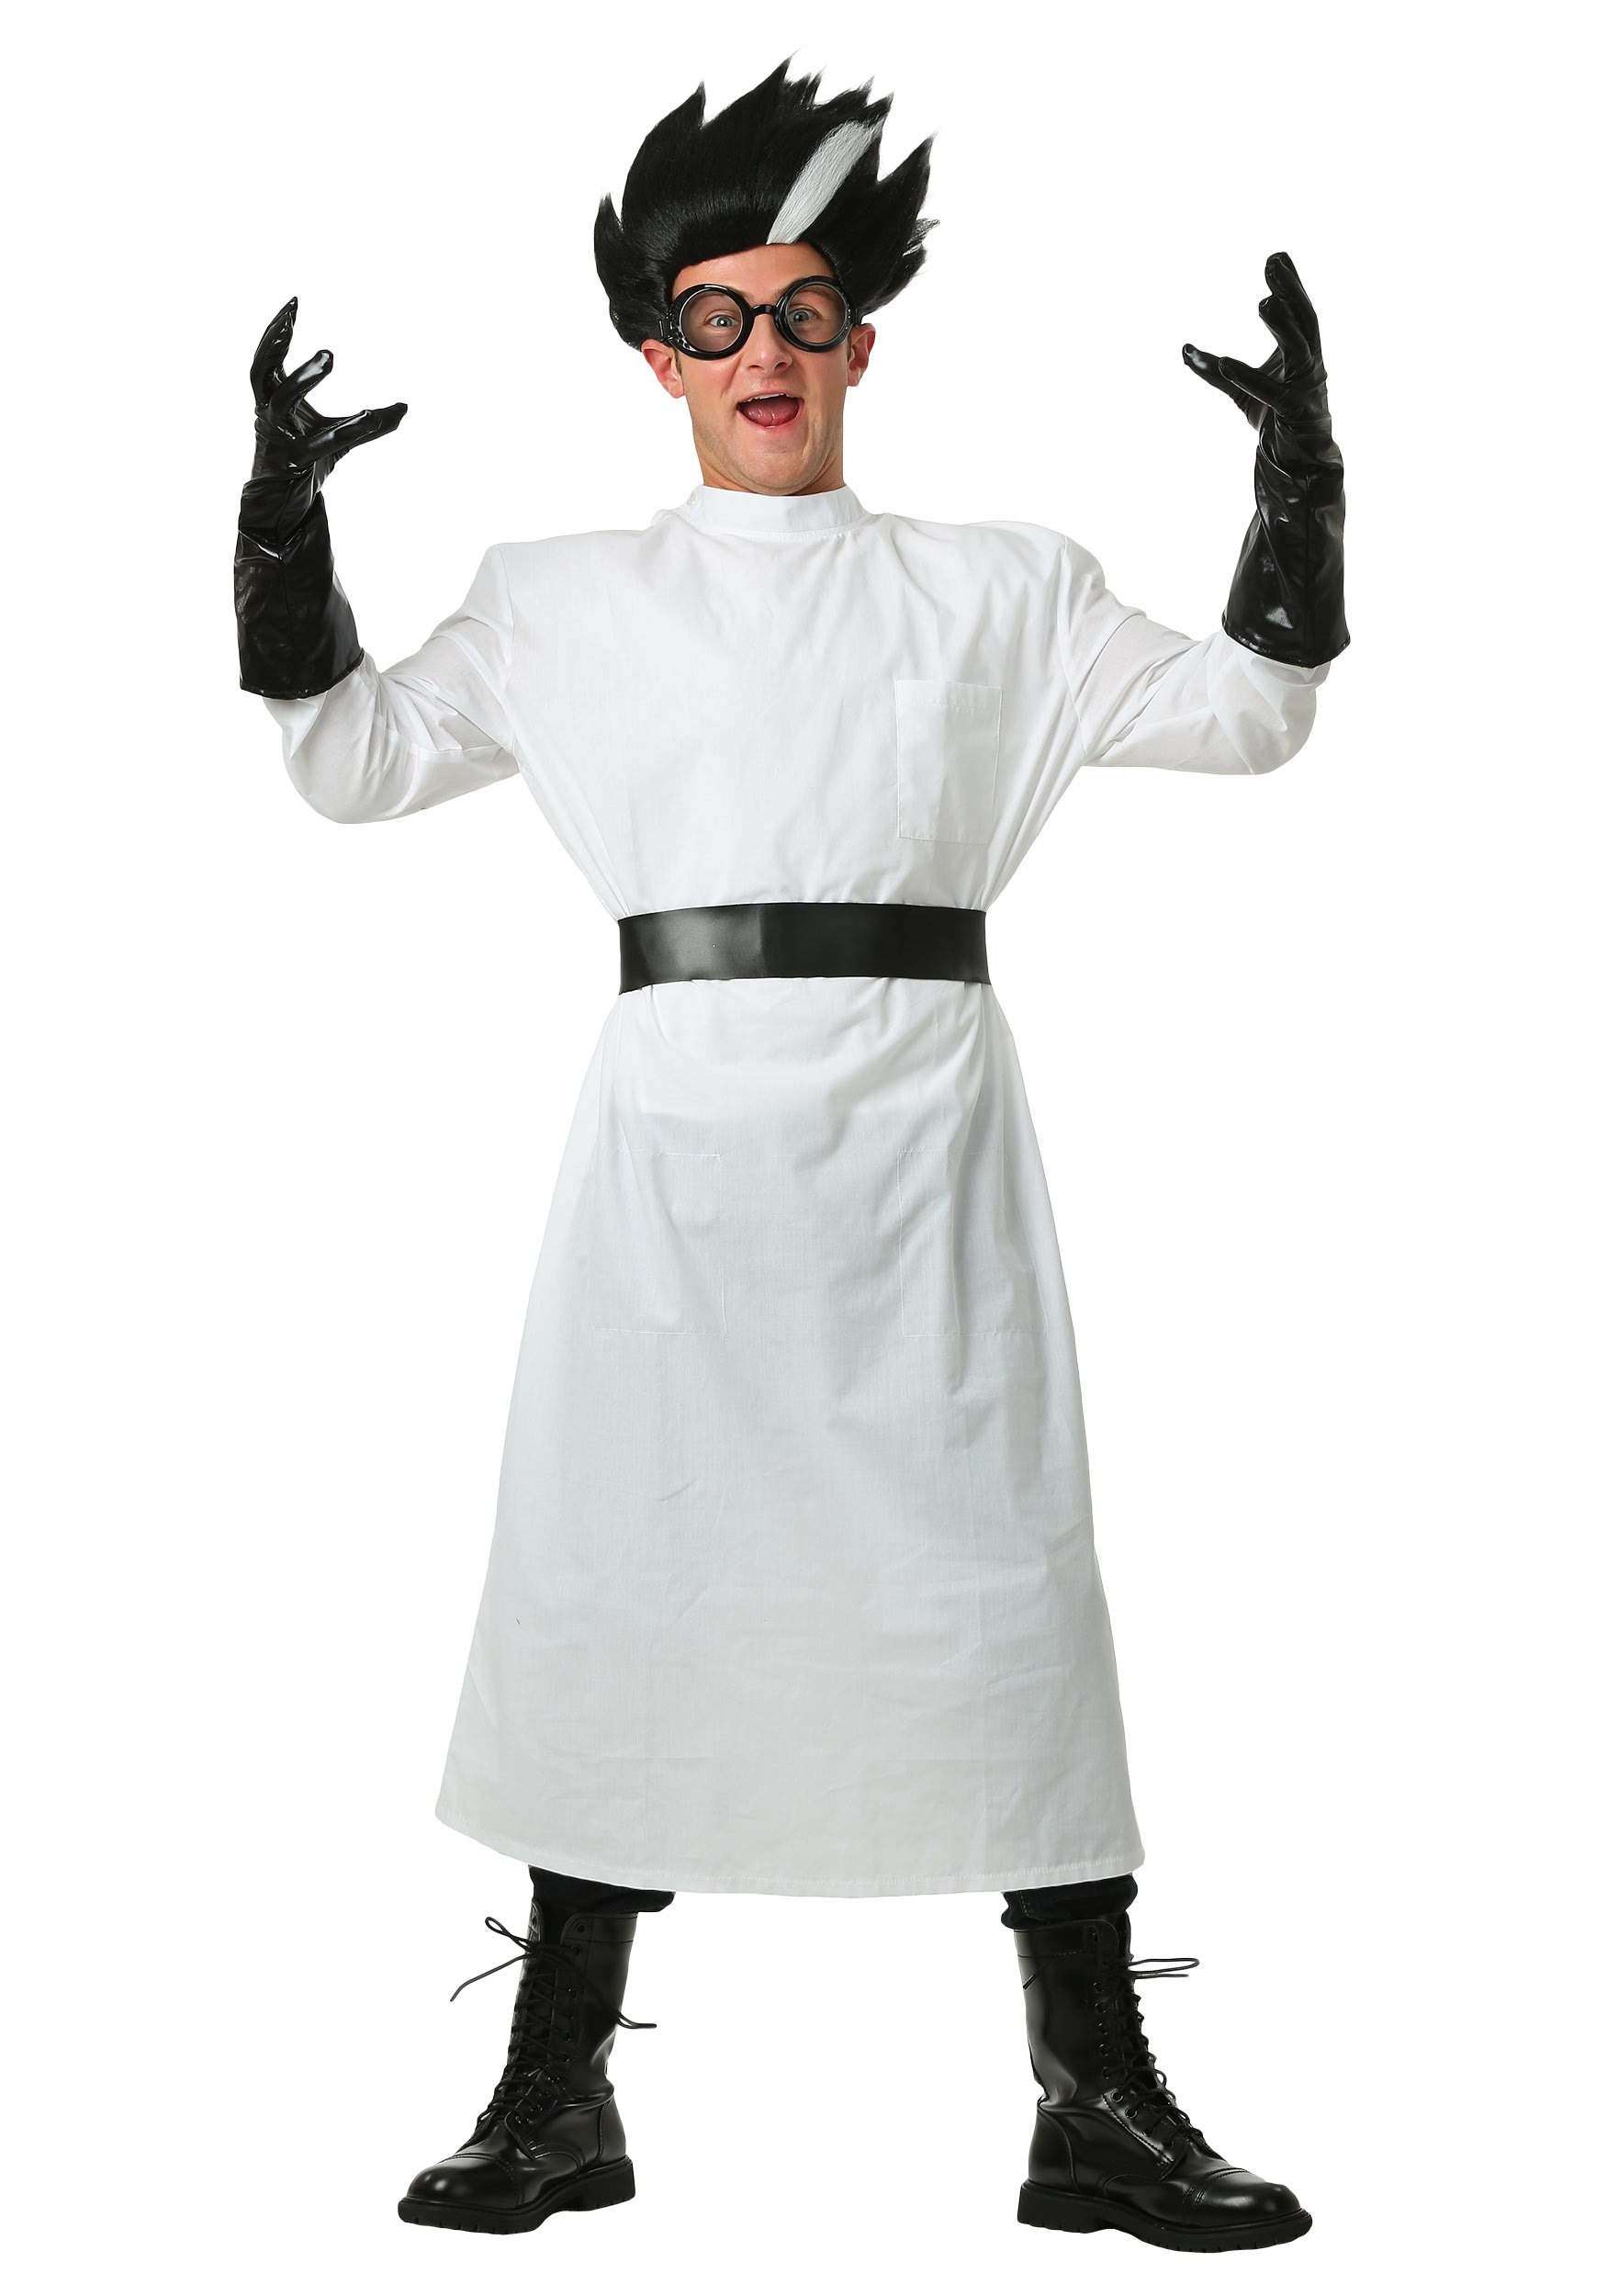 Deluxe Mad Scientist Costume for Adults